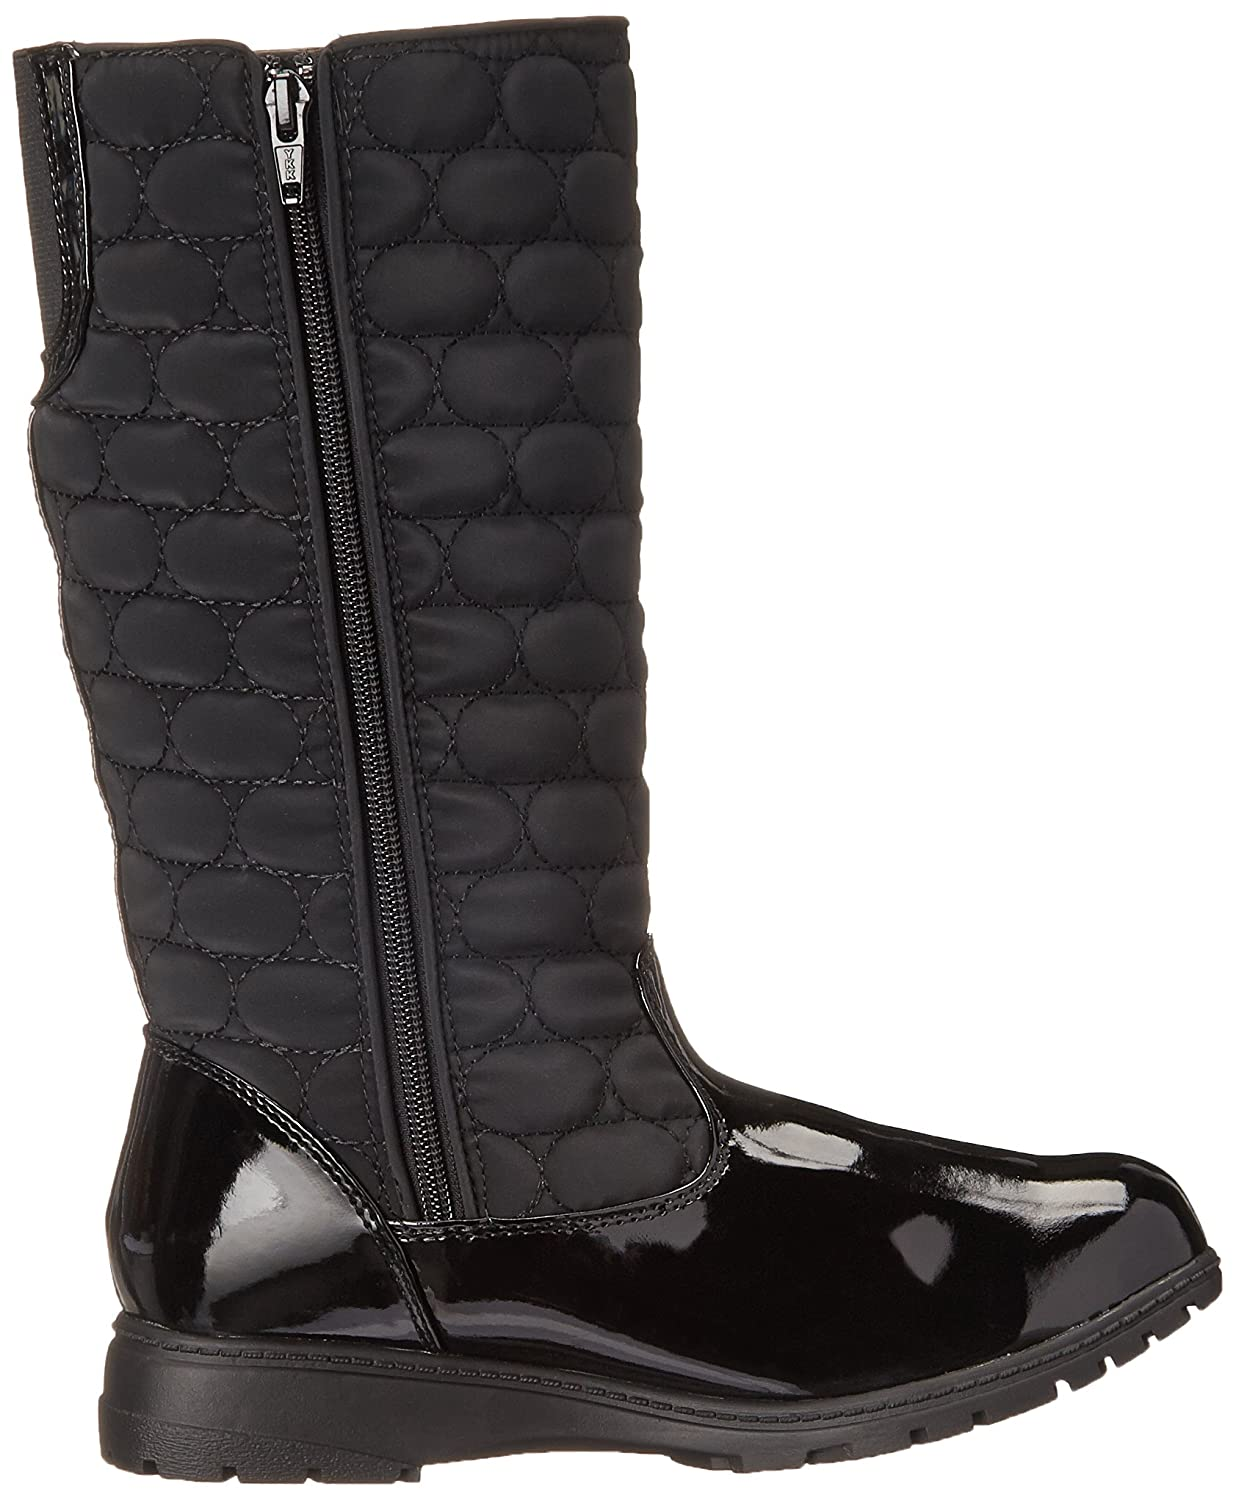 33aa20e8b2e2 ... Soft Soft Soft Style by Hush Puppies Women s Paris Boot B00V6P84I8  Boots 5aede8 ...